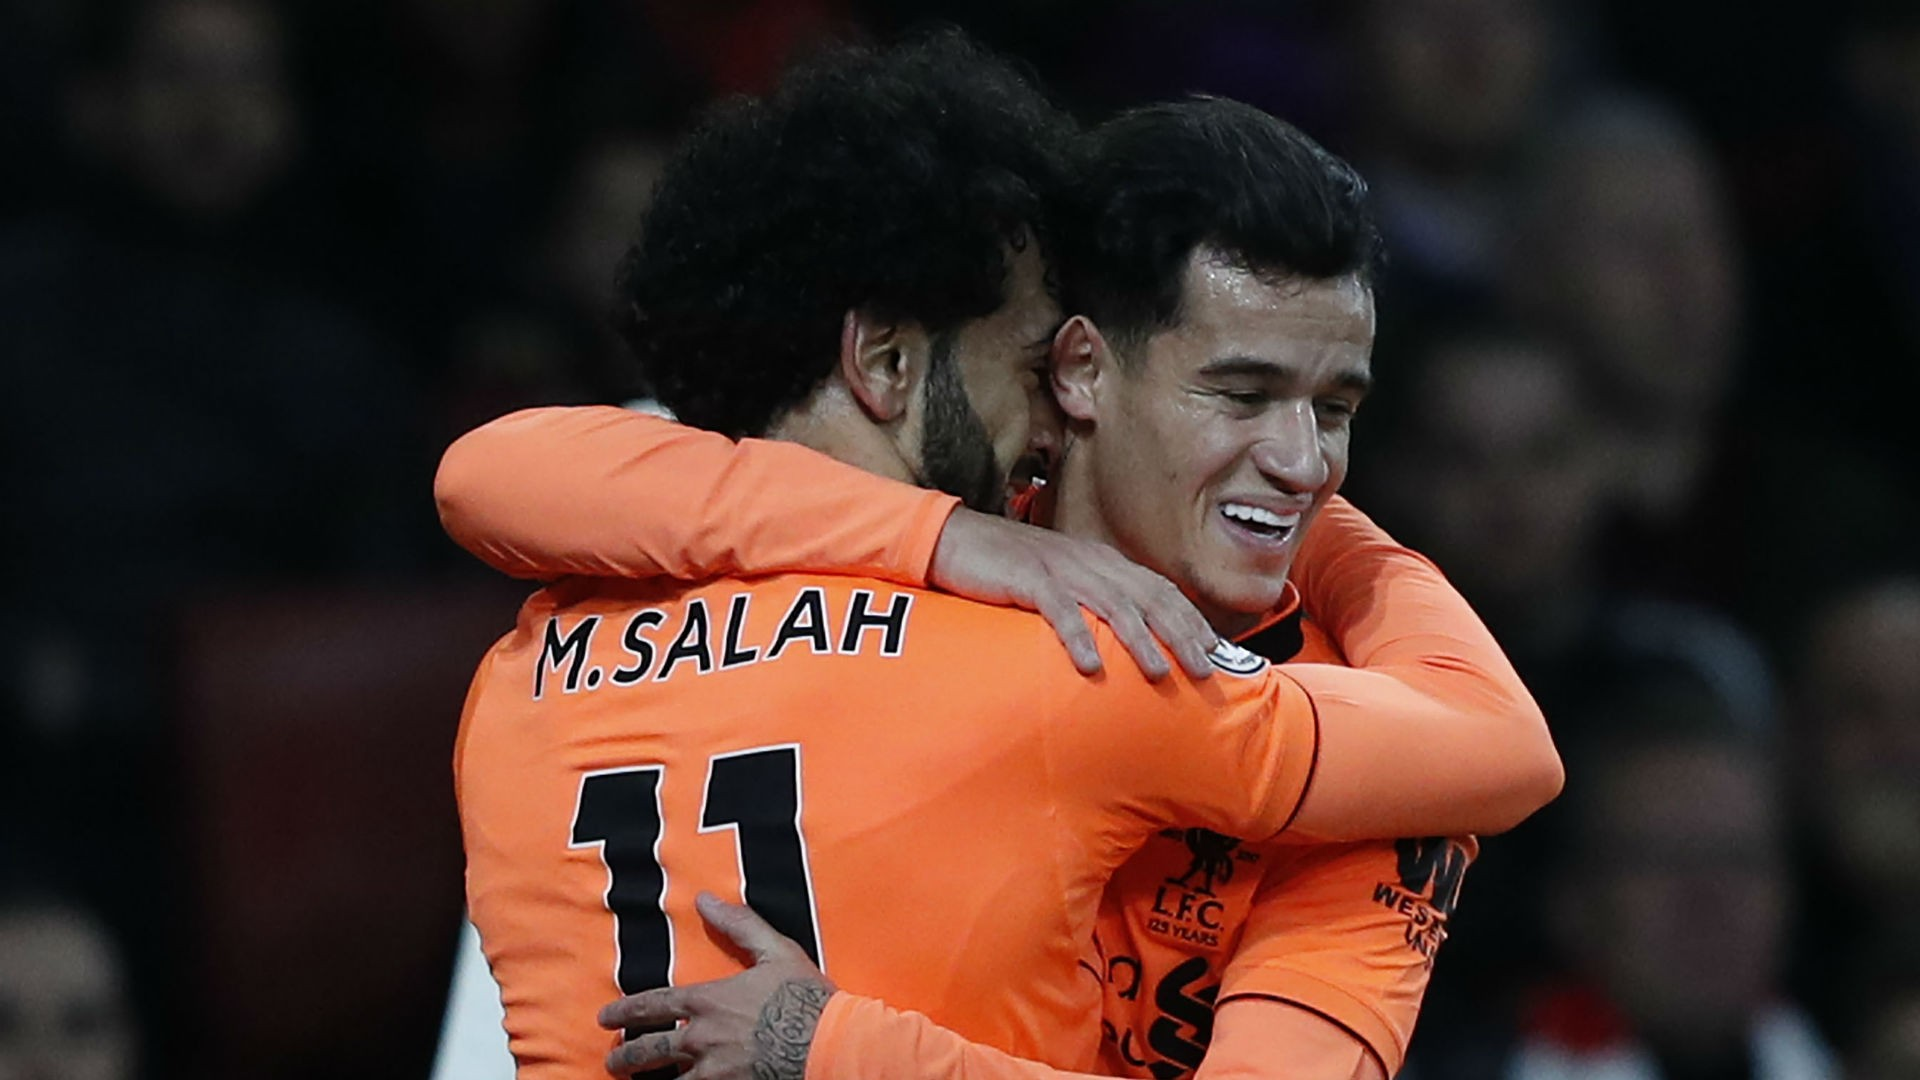 https://images.performgroup.com/di/library/GOAL/1e/7a/philippe-coutinho-mohamed-salah-liverpool_1b2i0ea5cptym1o7phahjfsyjf.jpg?t=2142286520&quality=90&w=0&h=1260